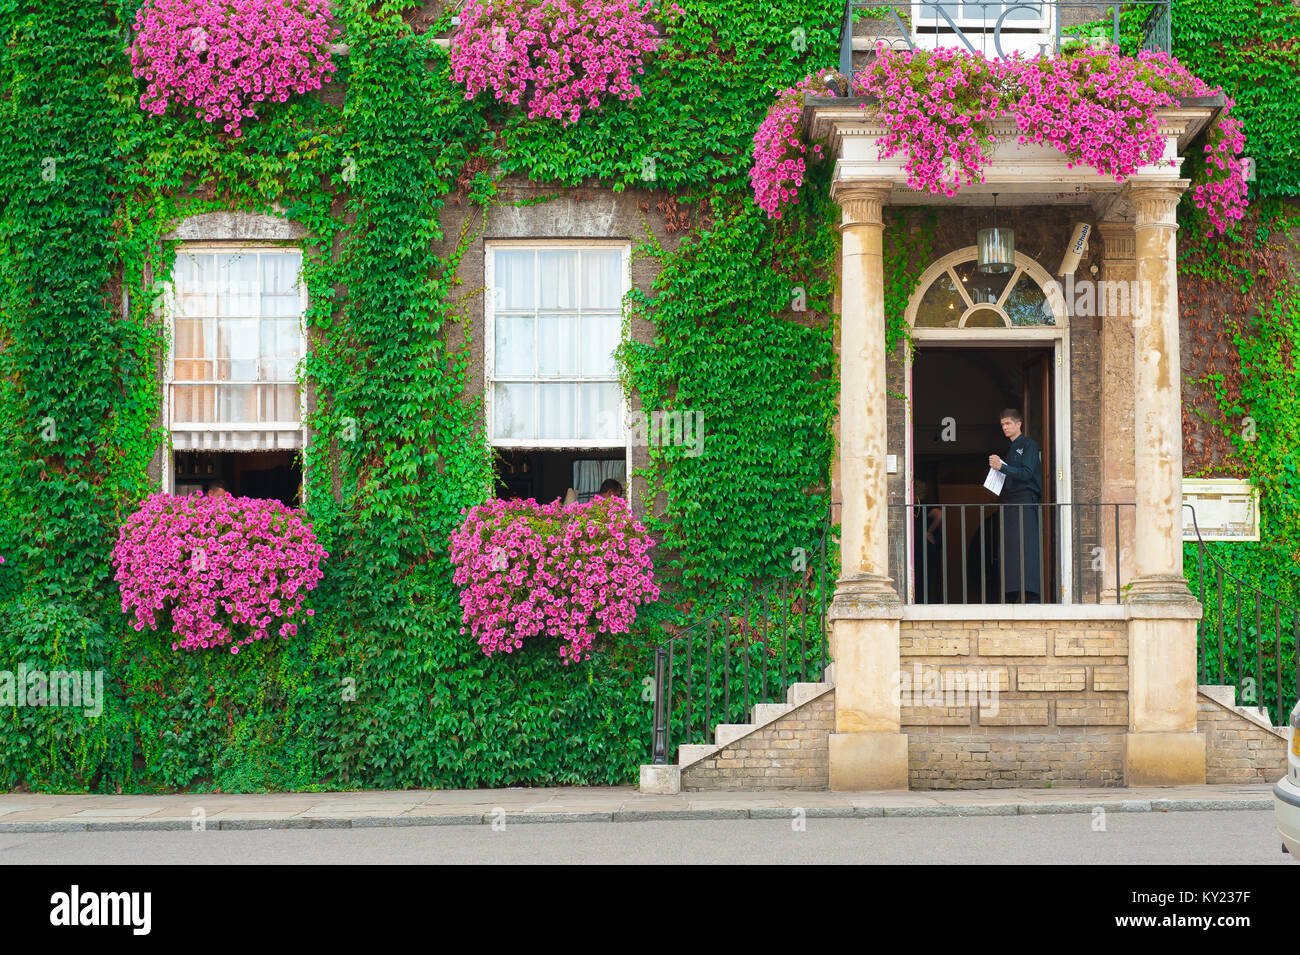 Bury St Edmunds Angel Hill, view in summer of the colourful vine-clad exterior of the Angel Hotel on Angel Hill - Stock Image